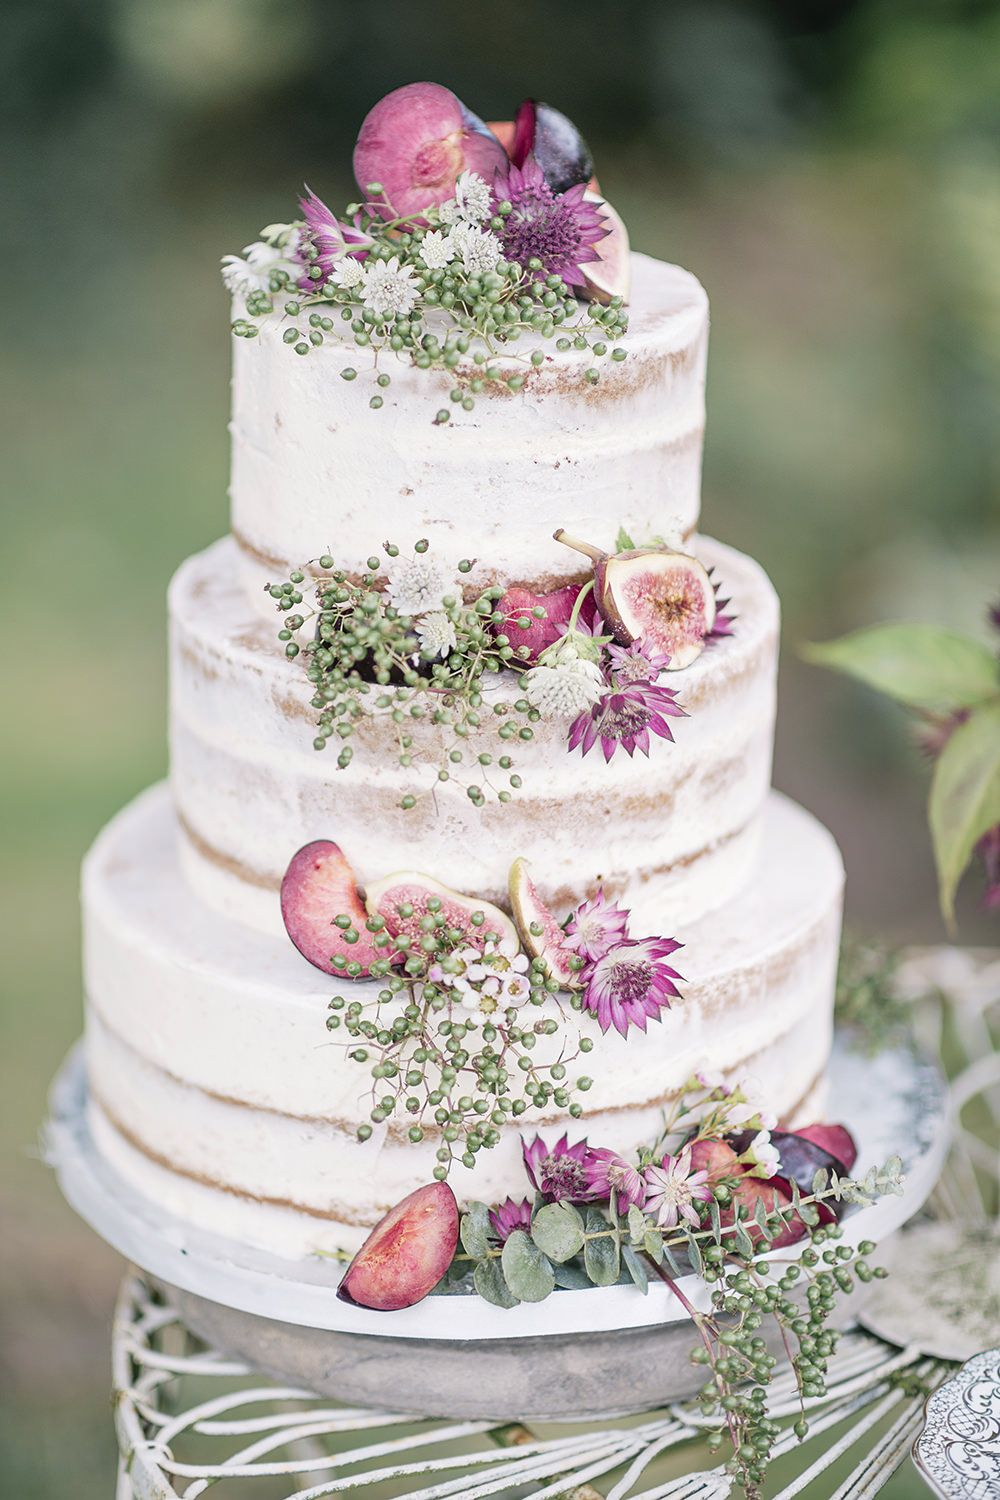 English Elegance   Wedding Ideas   Pinterest   Art photographers     Semi Naked Cake with Fig Decor   Dreamy English Elegance Floral Inspiration  Shoot Captured by Fine Art Photographer Kathryn Hopkins Photography    Fallen